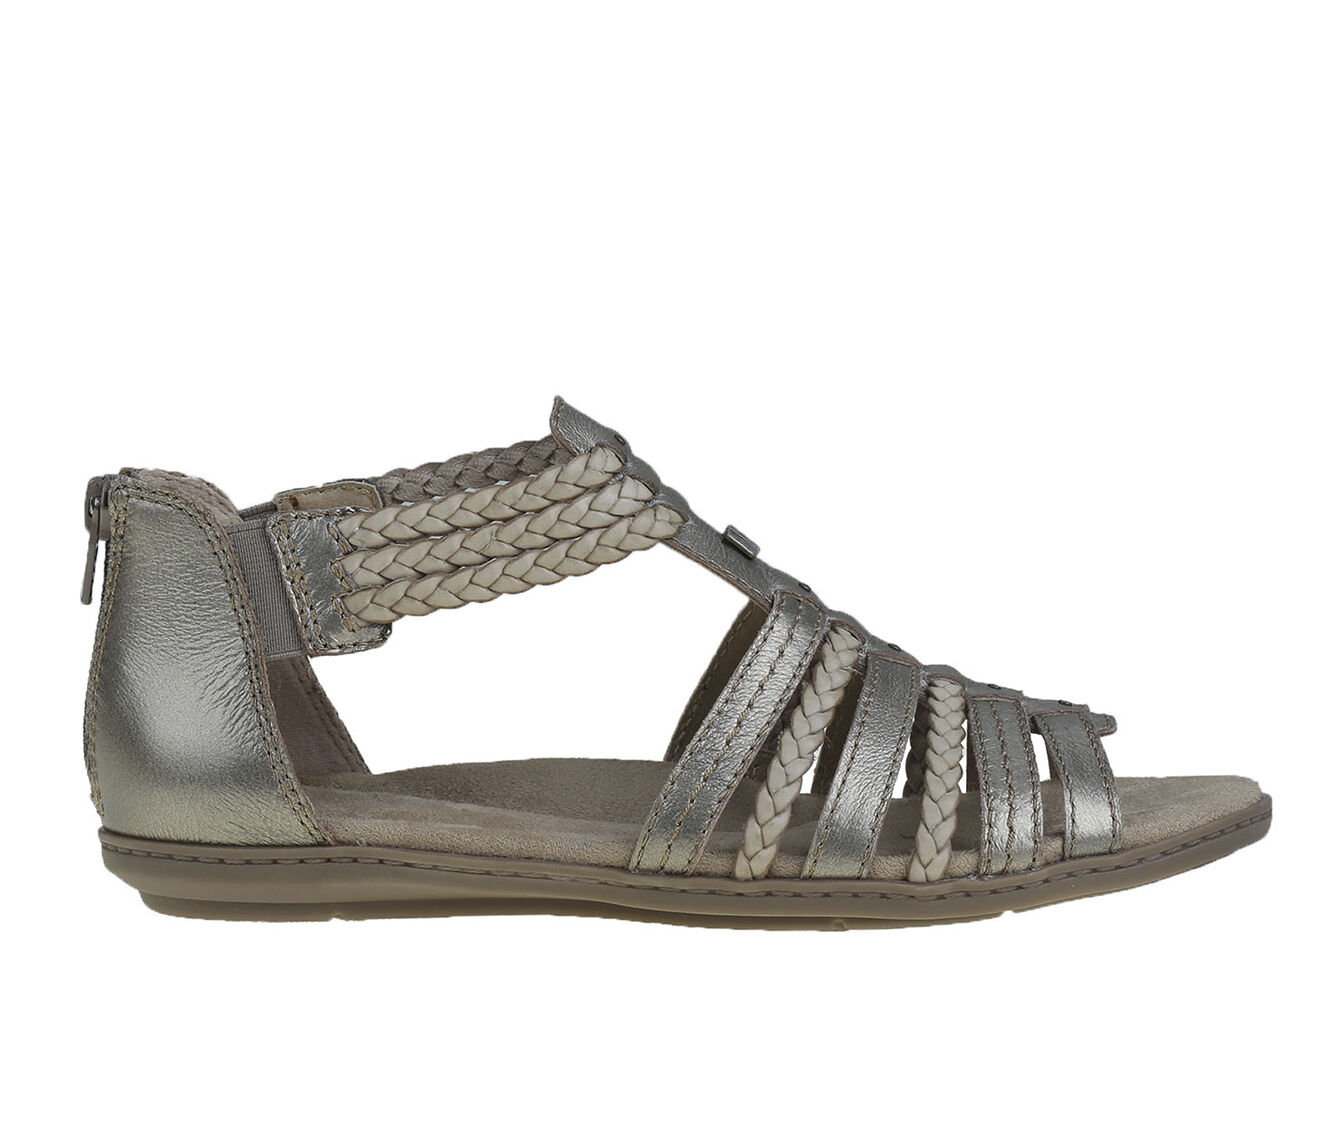 Women's Earth Origins Belle Blaine Sandals Platinum